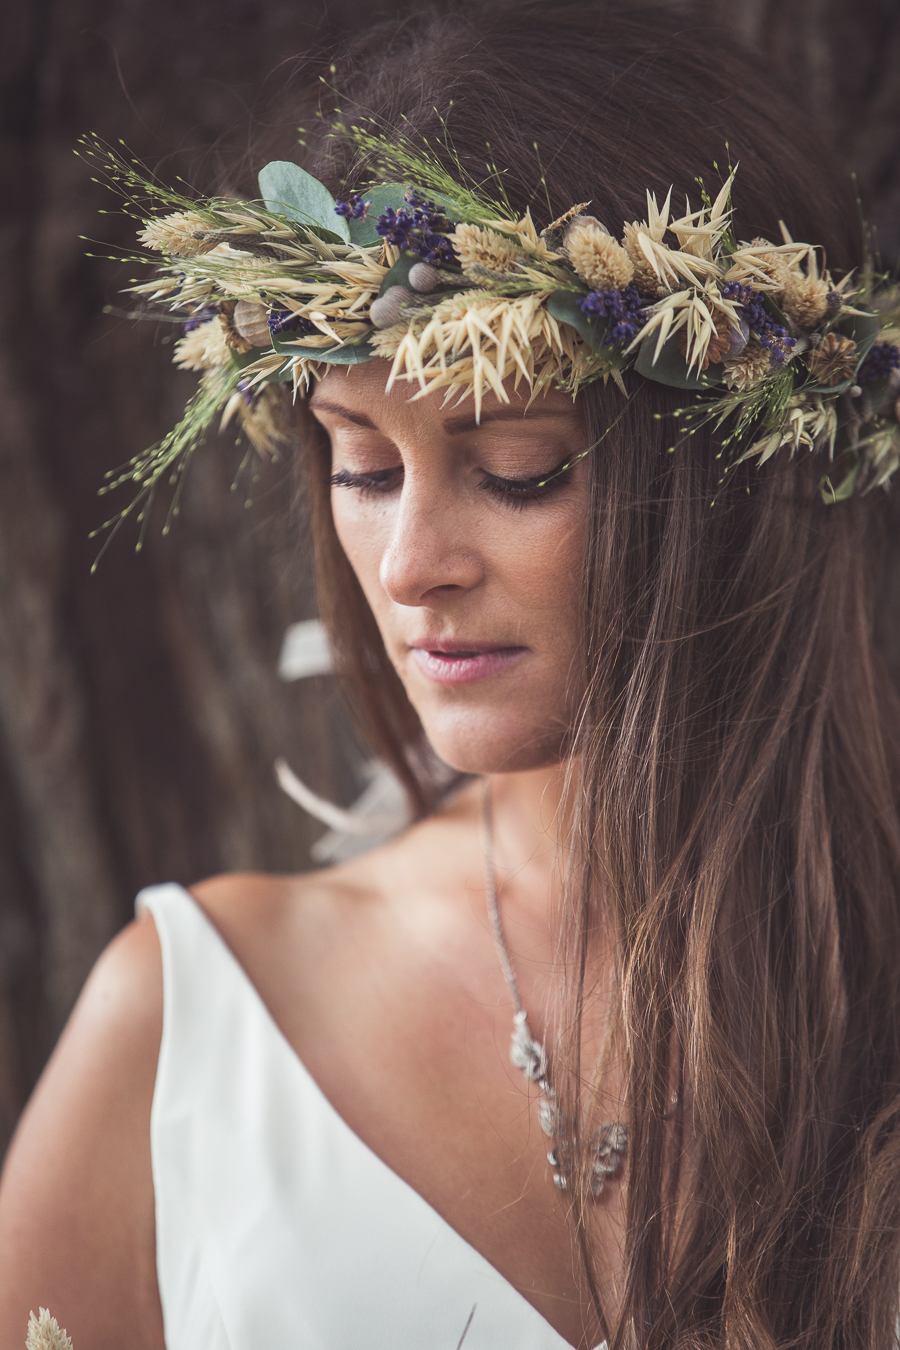 Beach boho wedding styling ideas from the UK, image credit Katie Mortimore (22)